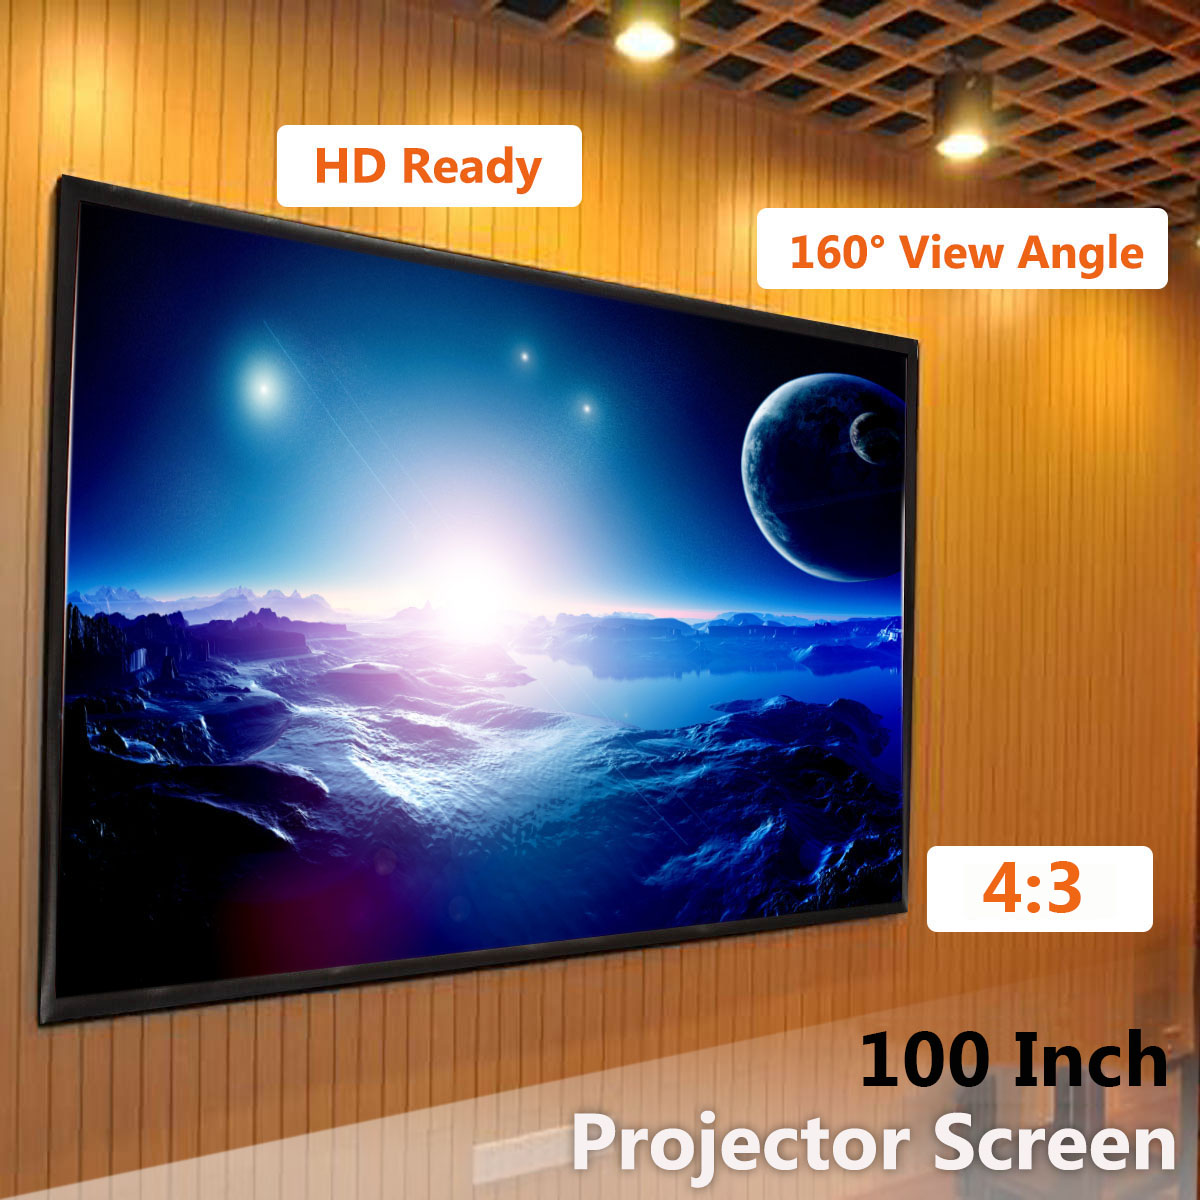 Portable 100inch 3D HD Wall Mounted Projection Screen Canvas 4:3 LED Projector Screen For Home Theater